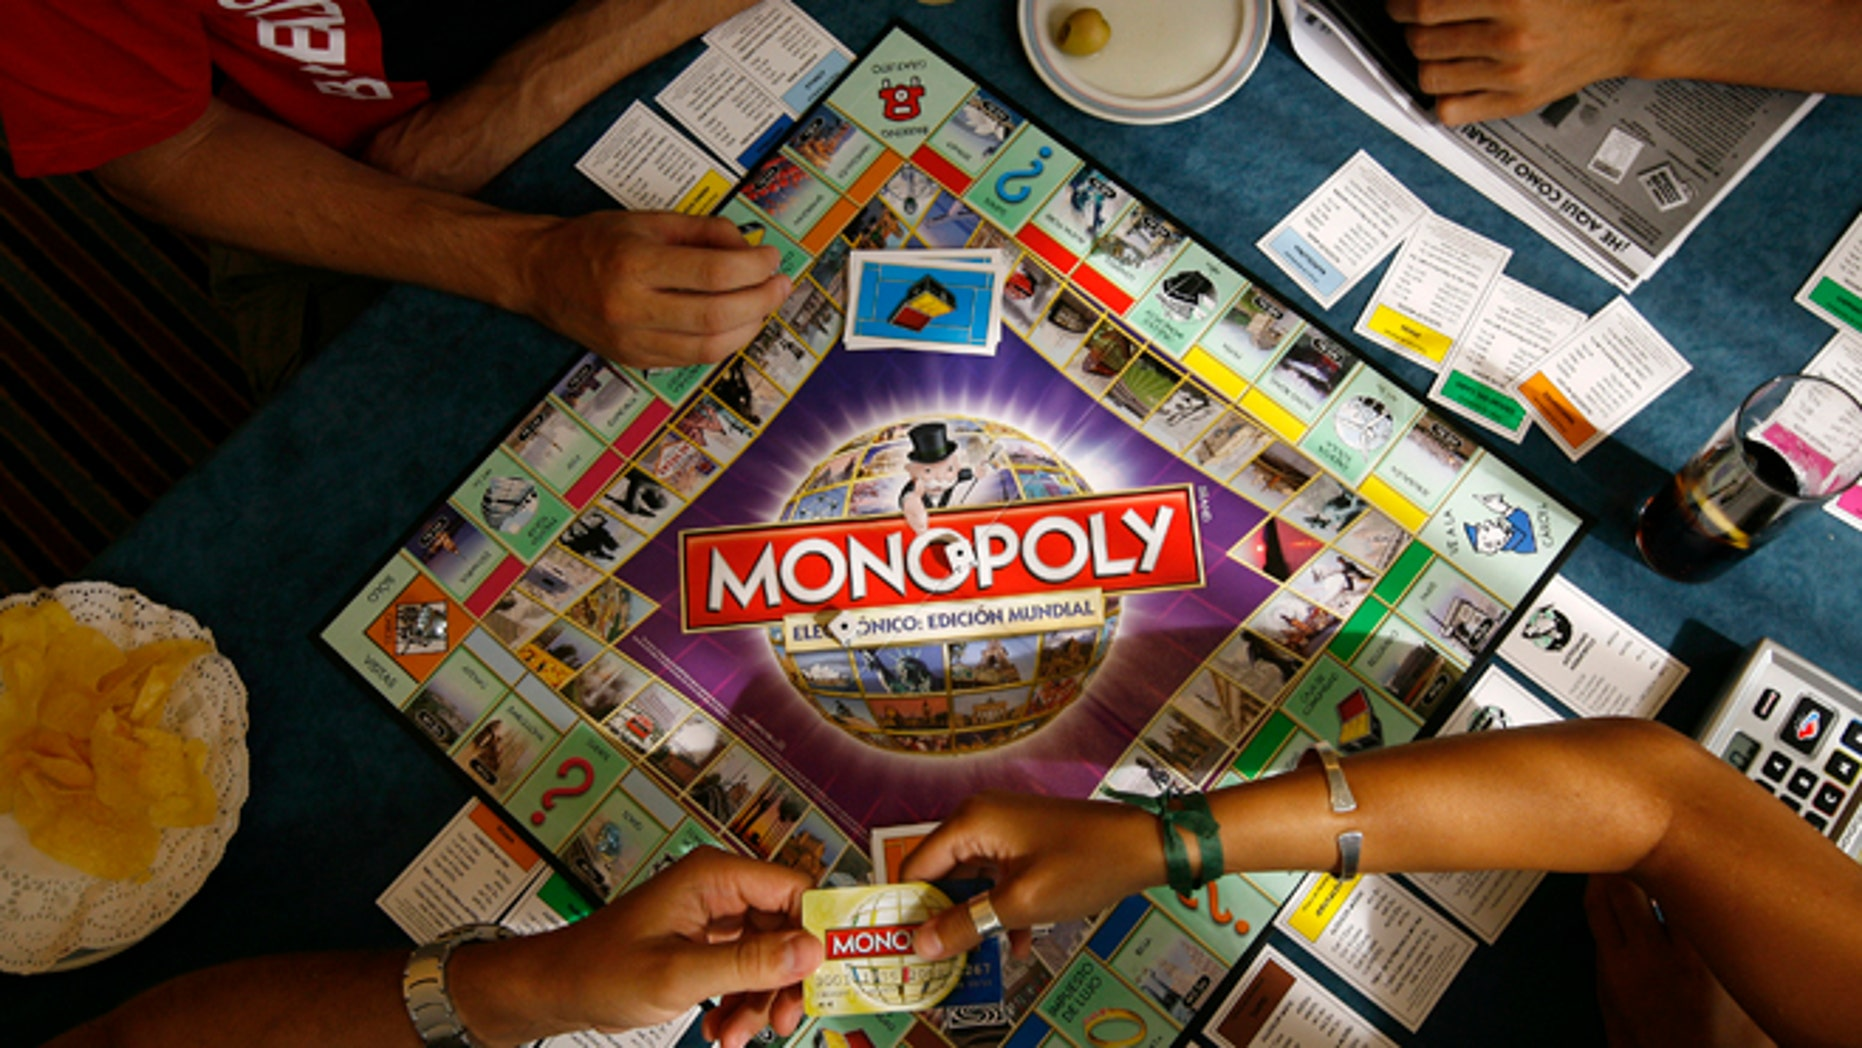 August 27, 2008: Players participate in a Guinness world record attempt taking place across the world for the largest simultaneous game of Monopoly, at a hotel in Madrid.